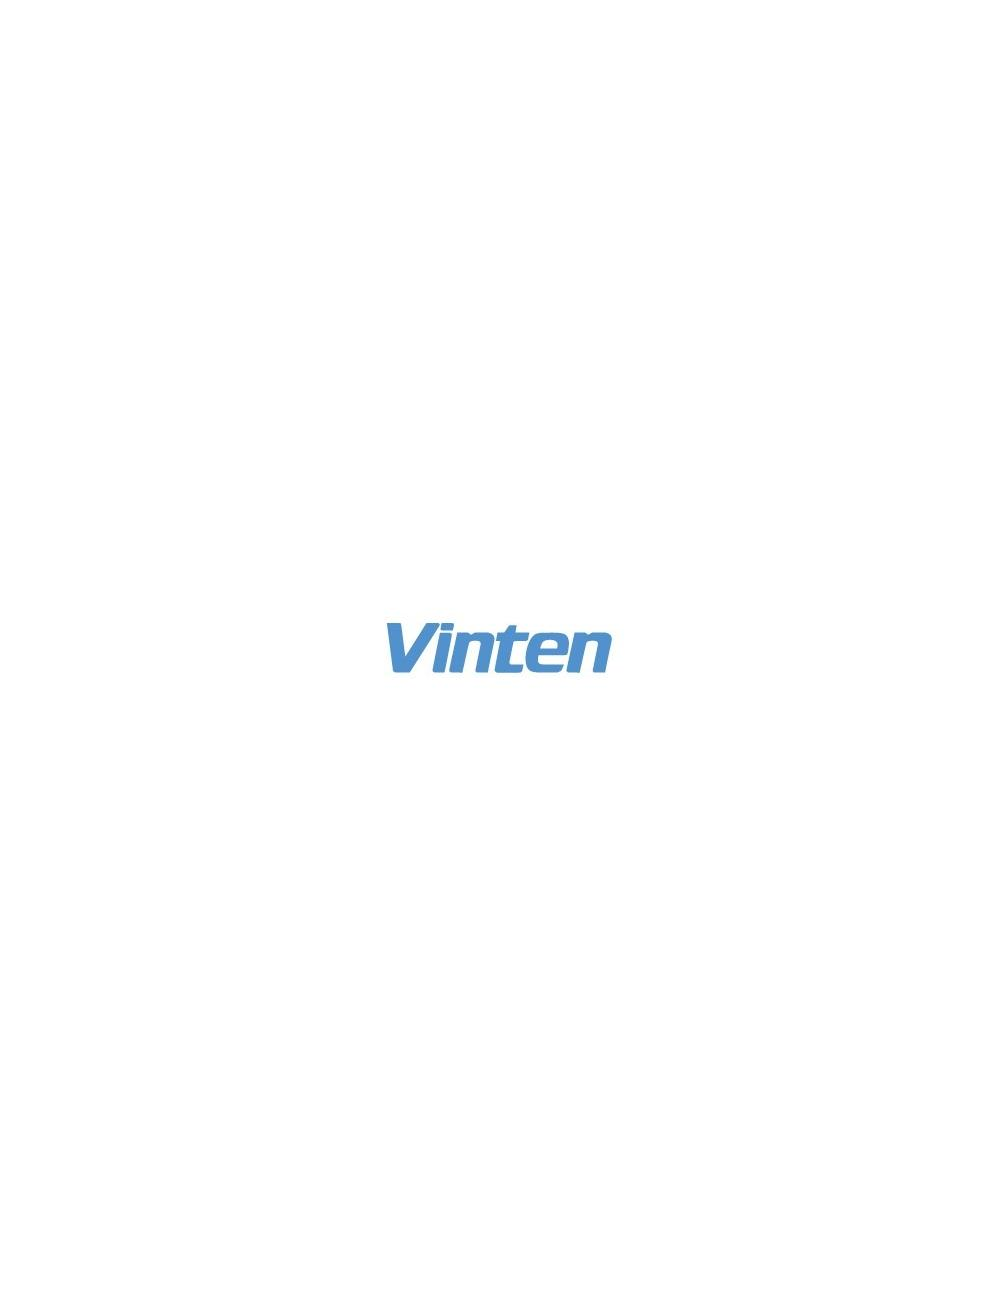 Vinten Hexagon 4m radius - 15°